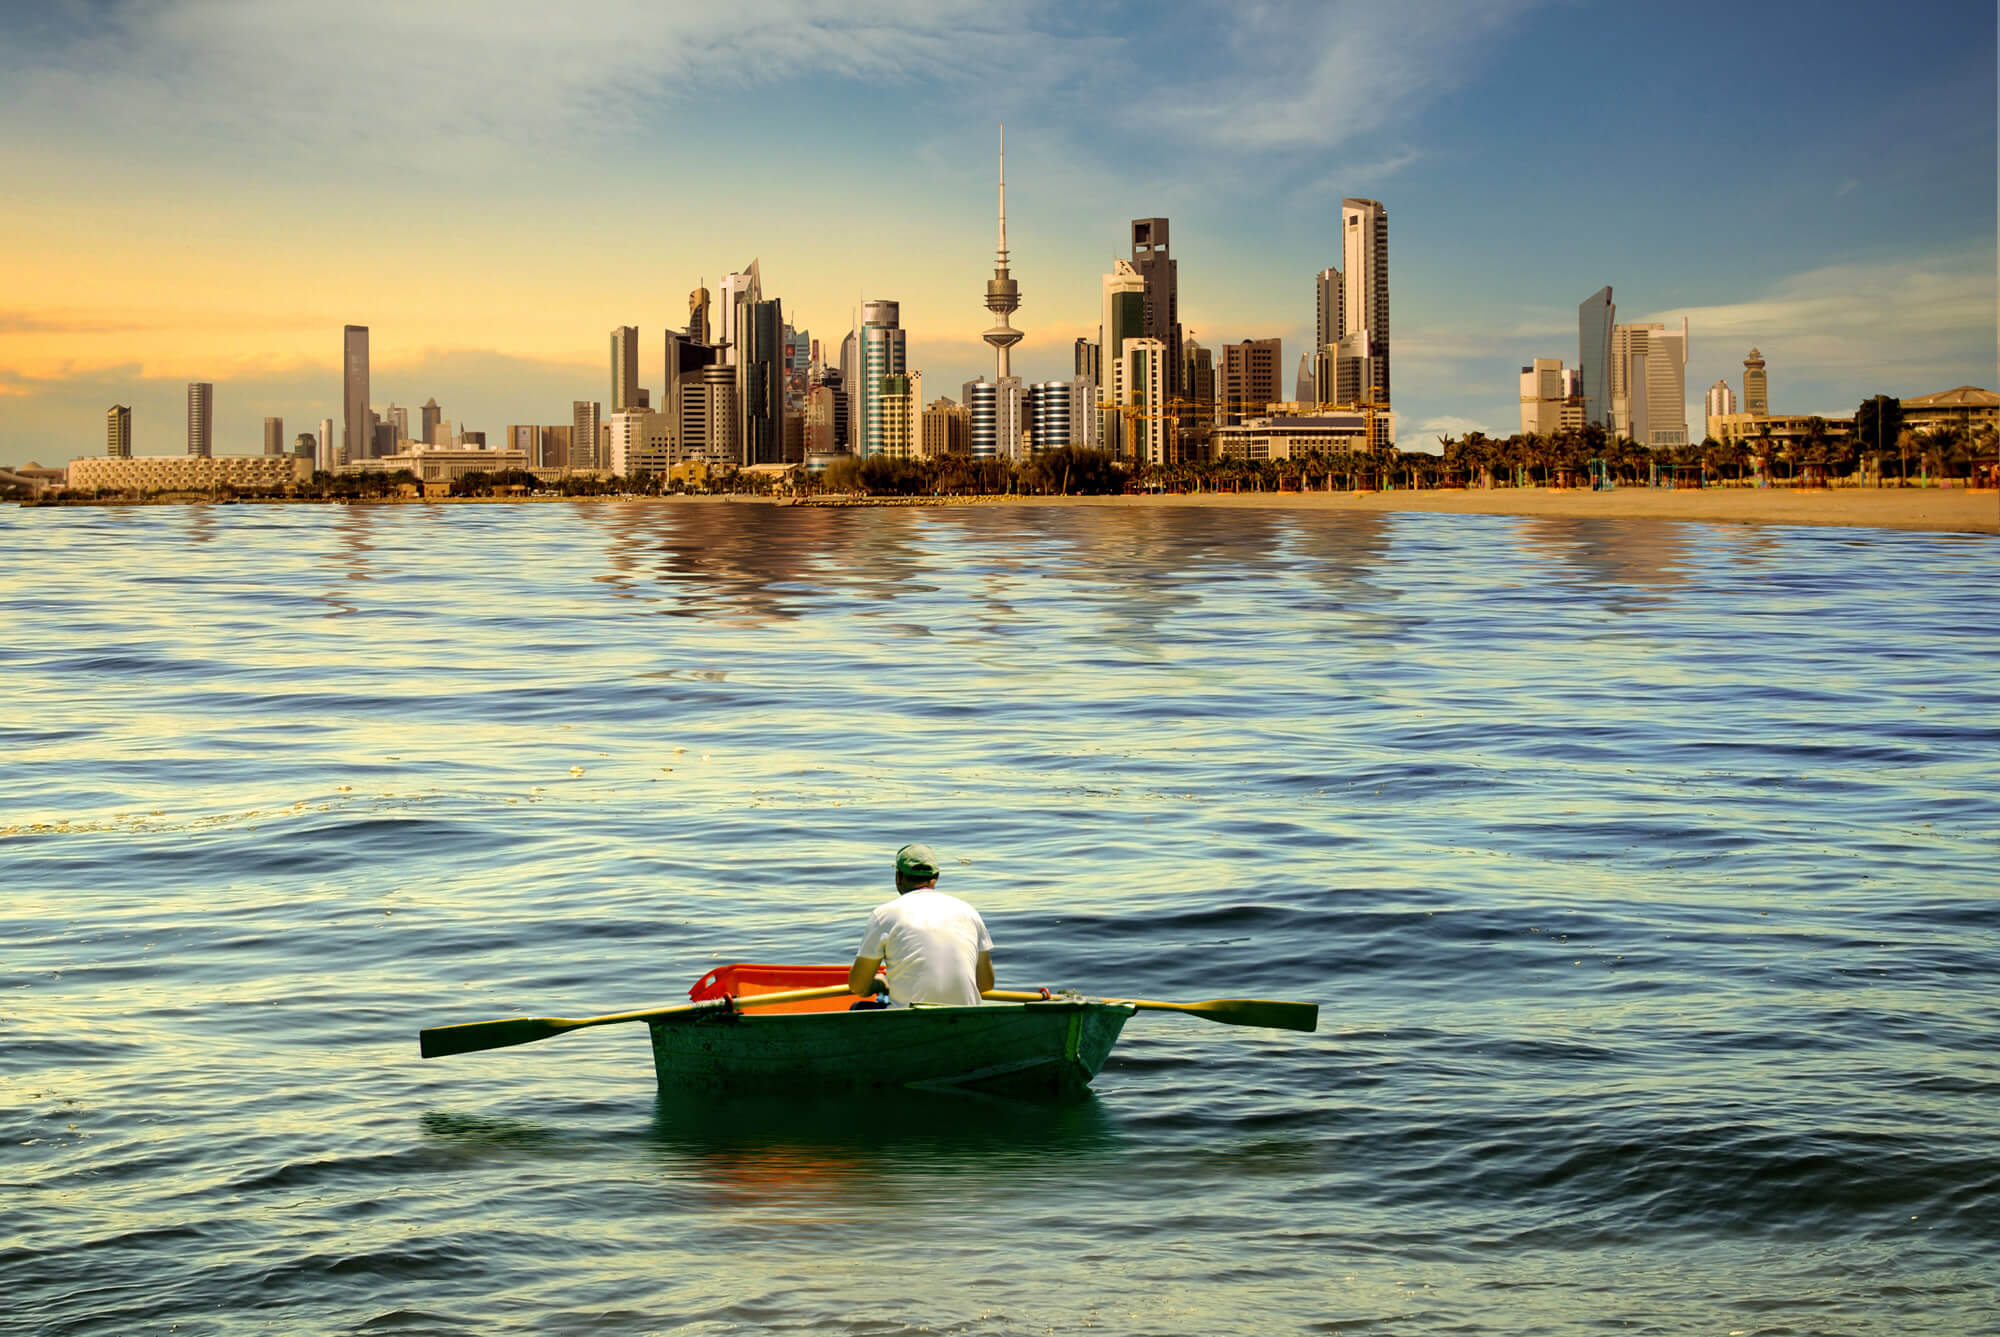 Rowing Boat on the Sea of Kuwait City